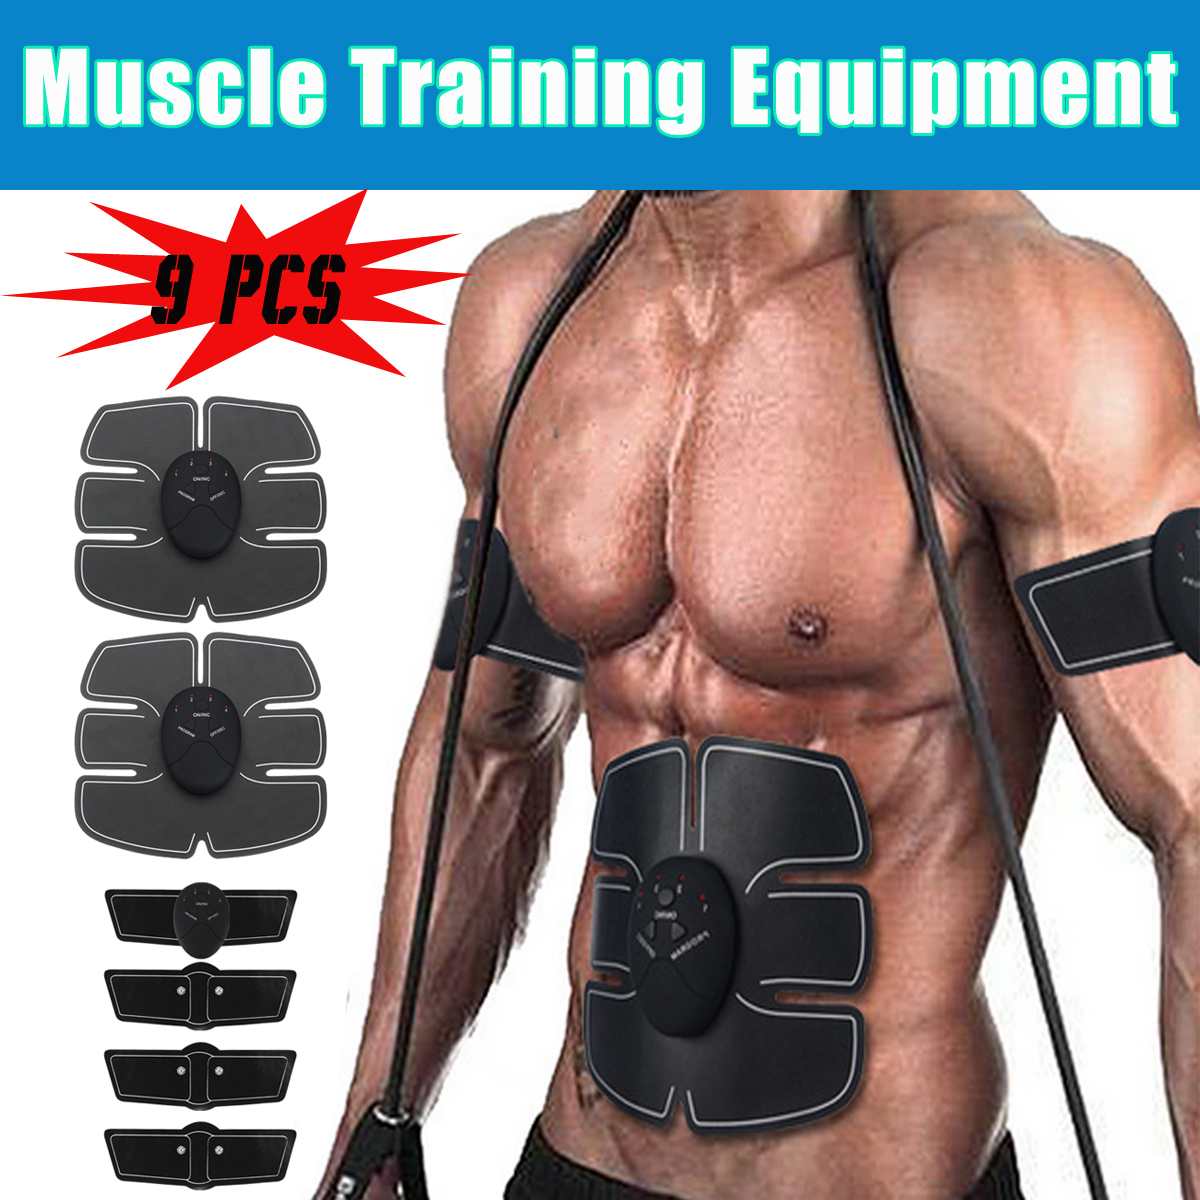 chair gym dvd set best chairs inc power lift recliner parts invalid category id walmart com product image 9pcs ems muscle abs fit training gear abdominal body exercise shape fitness rechargeable abdomen fat